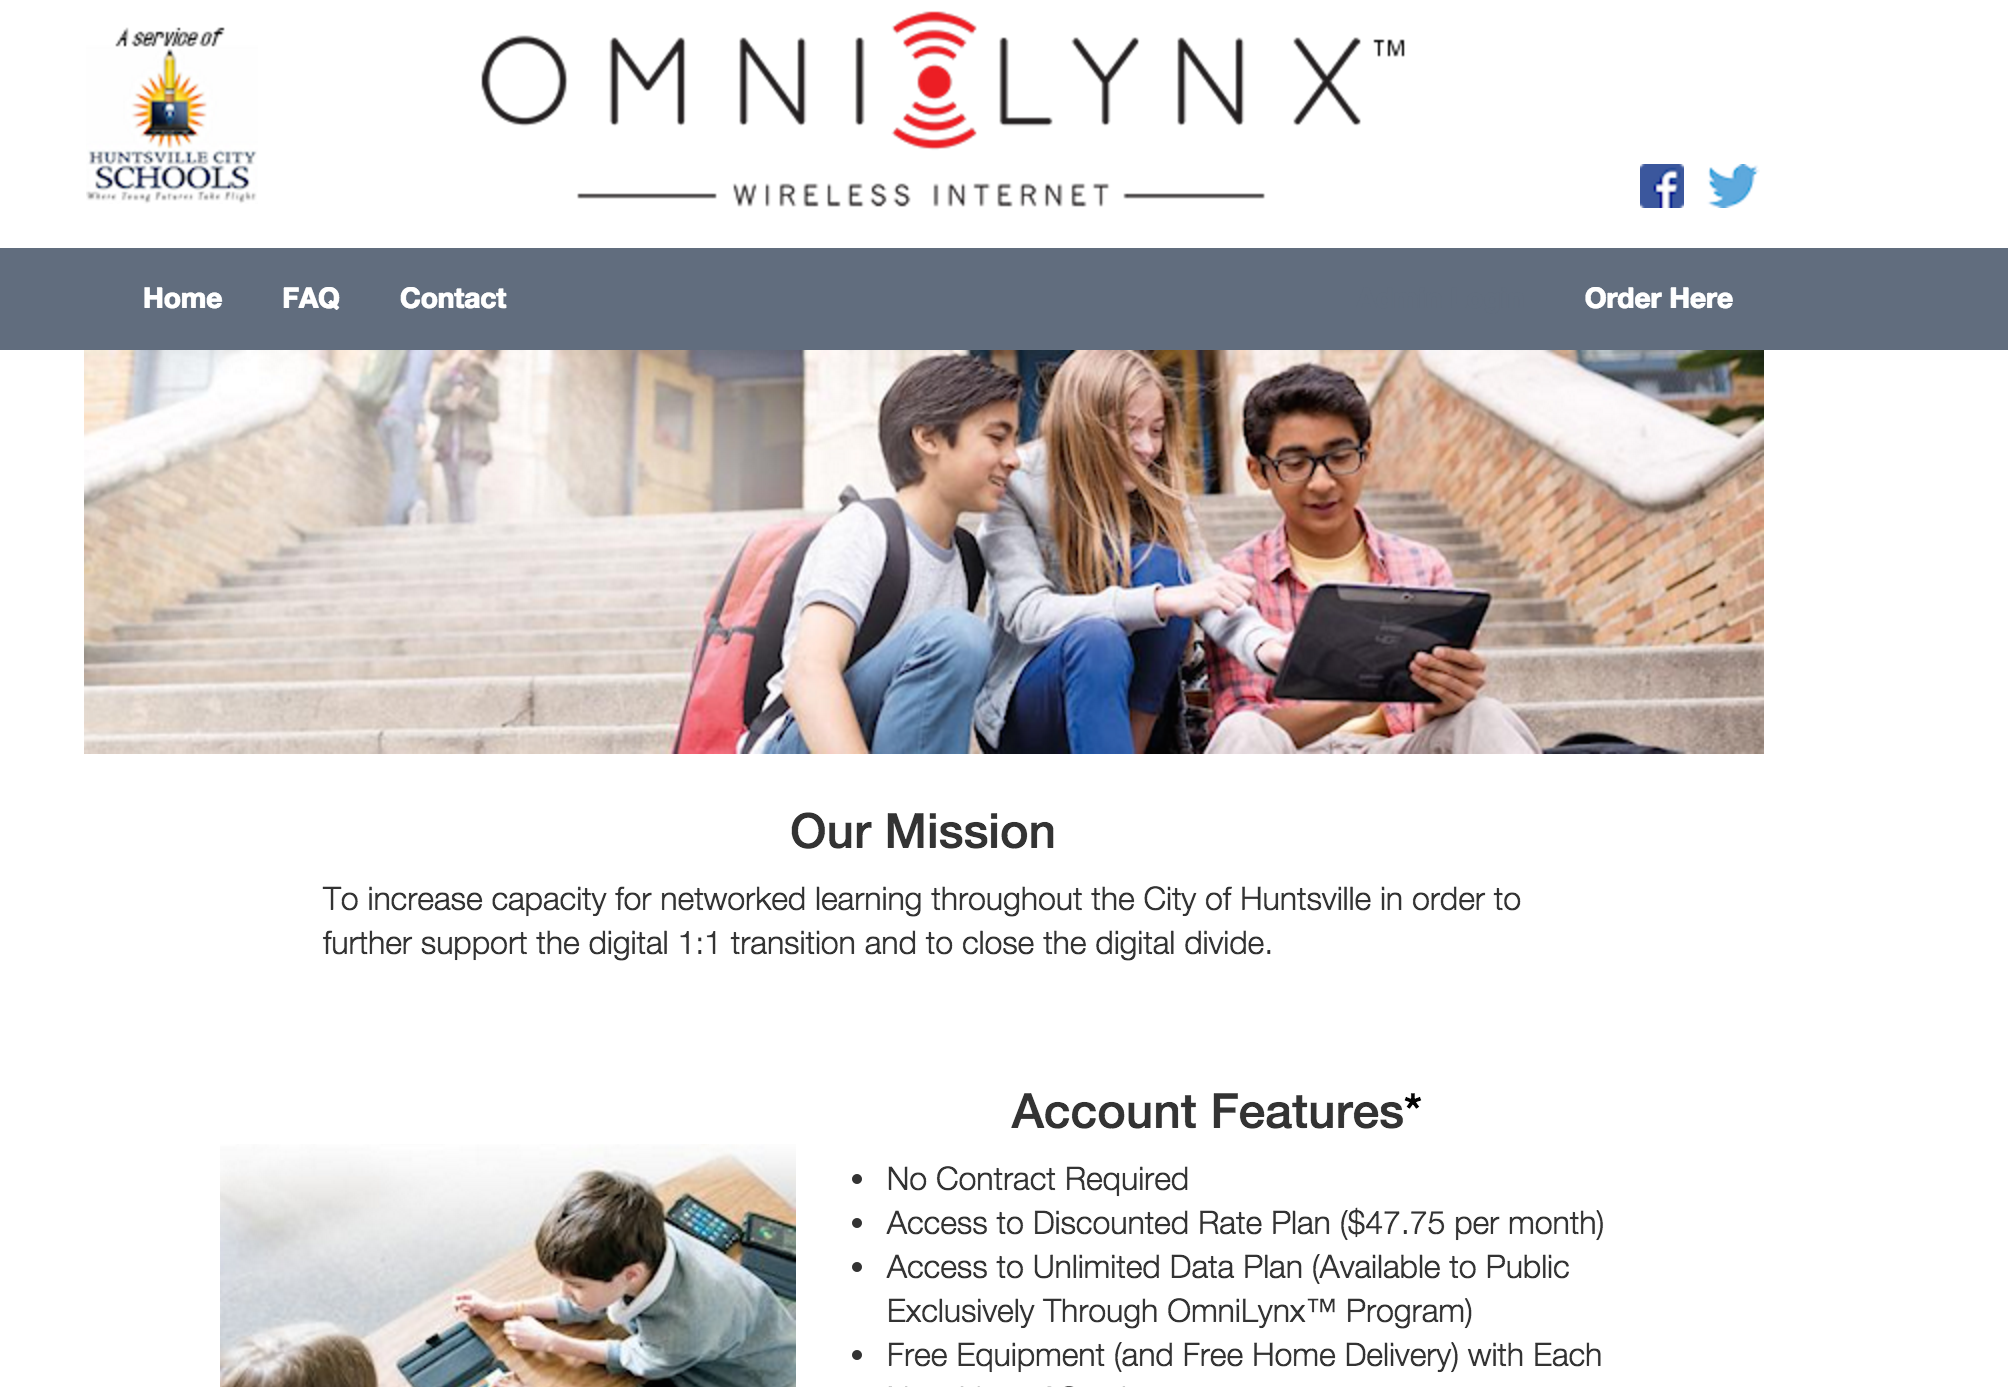 The OmniLynx website is still up, but the school district notified current customers that their service is slated to be terminated as of Nov. 30.